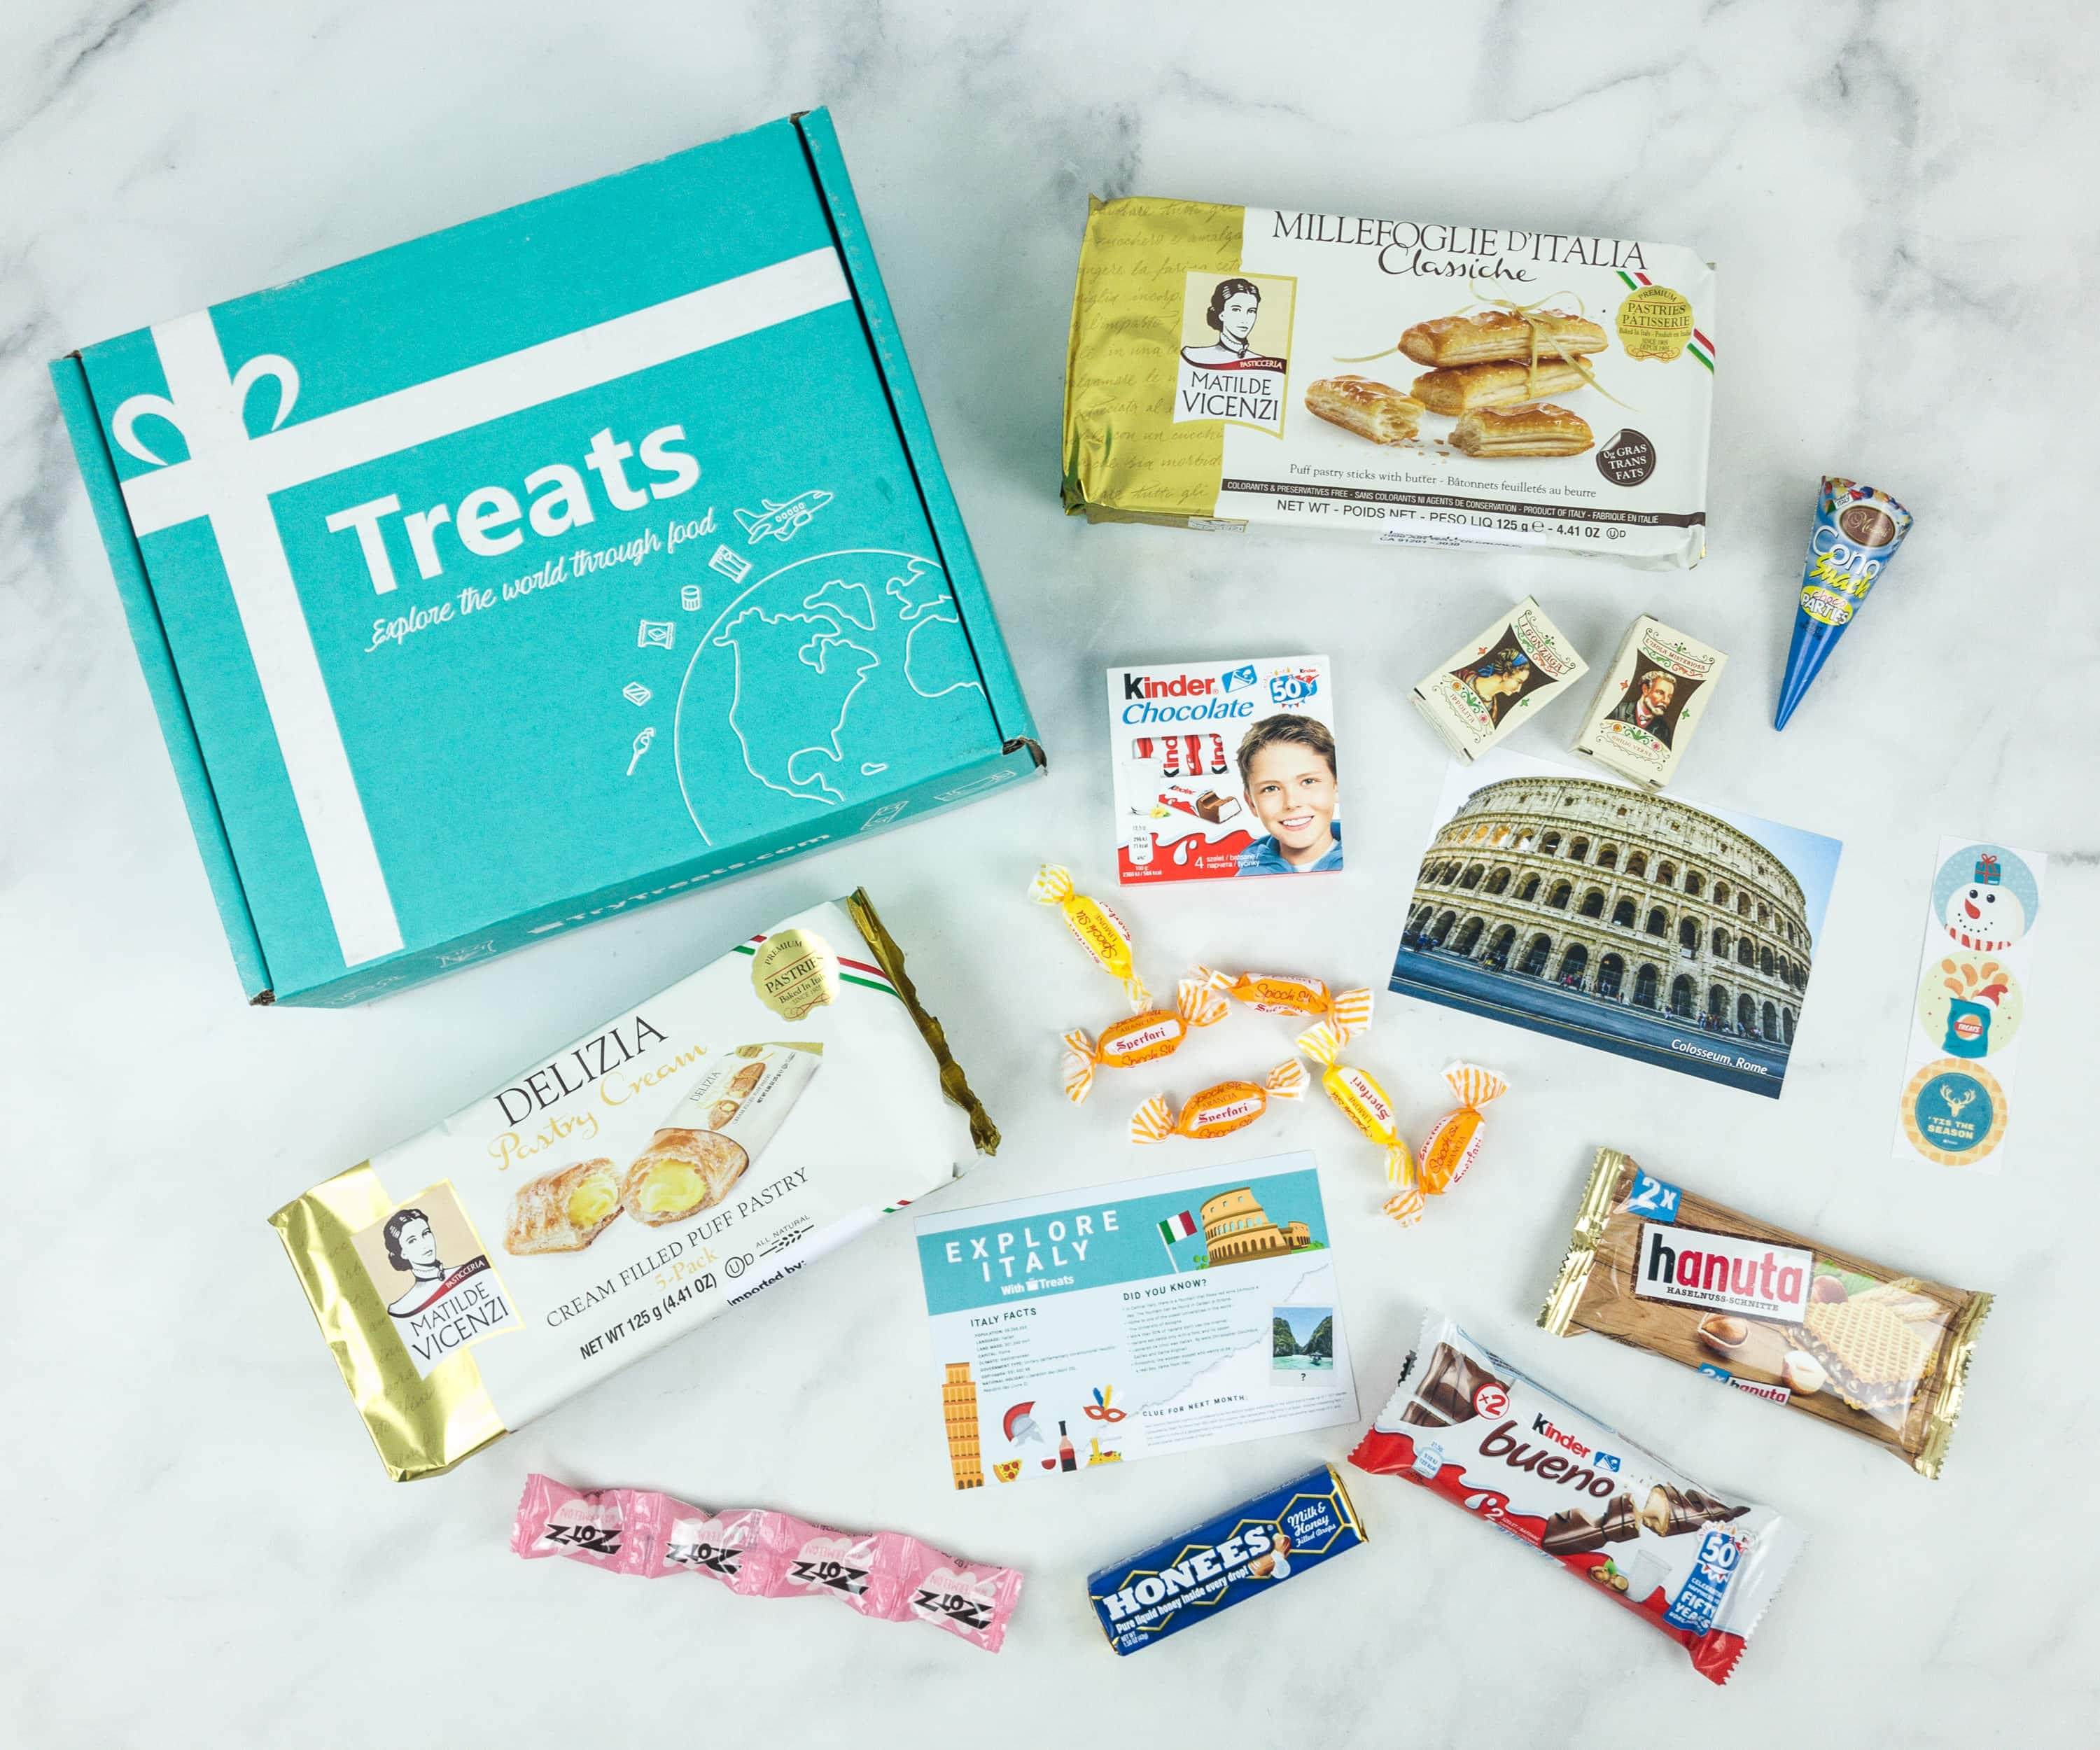 Treats Box December 2018 Review & Coupon